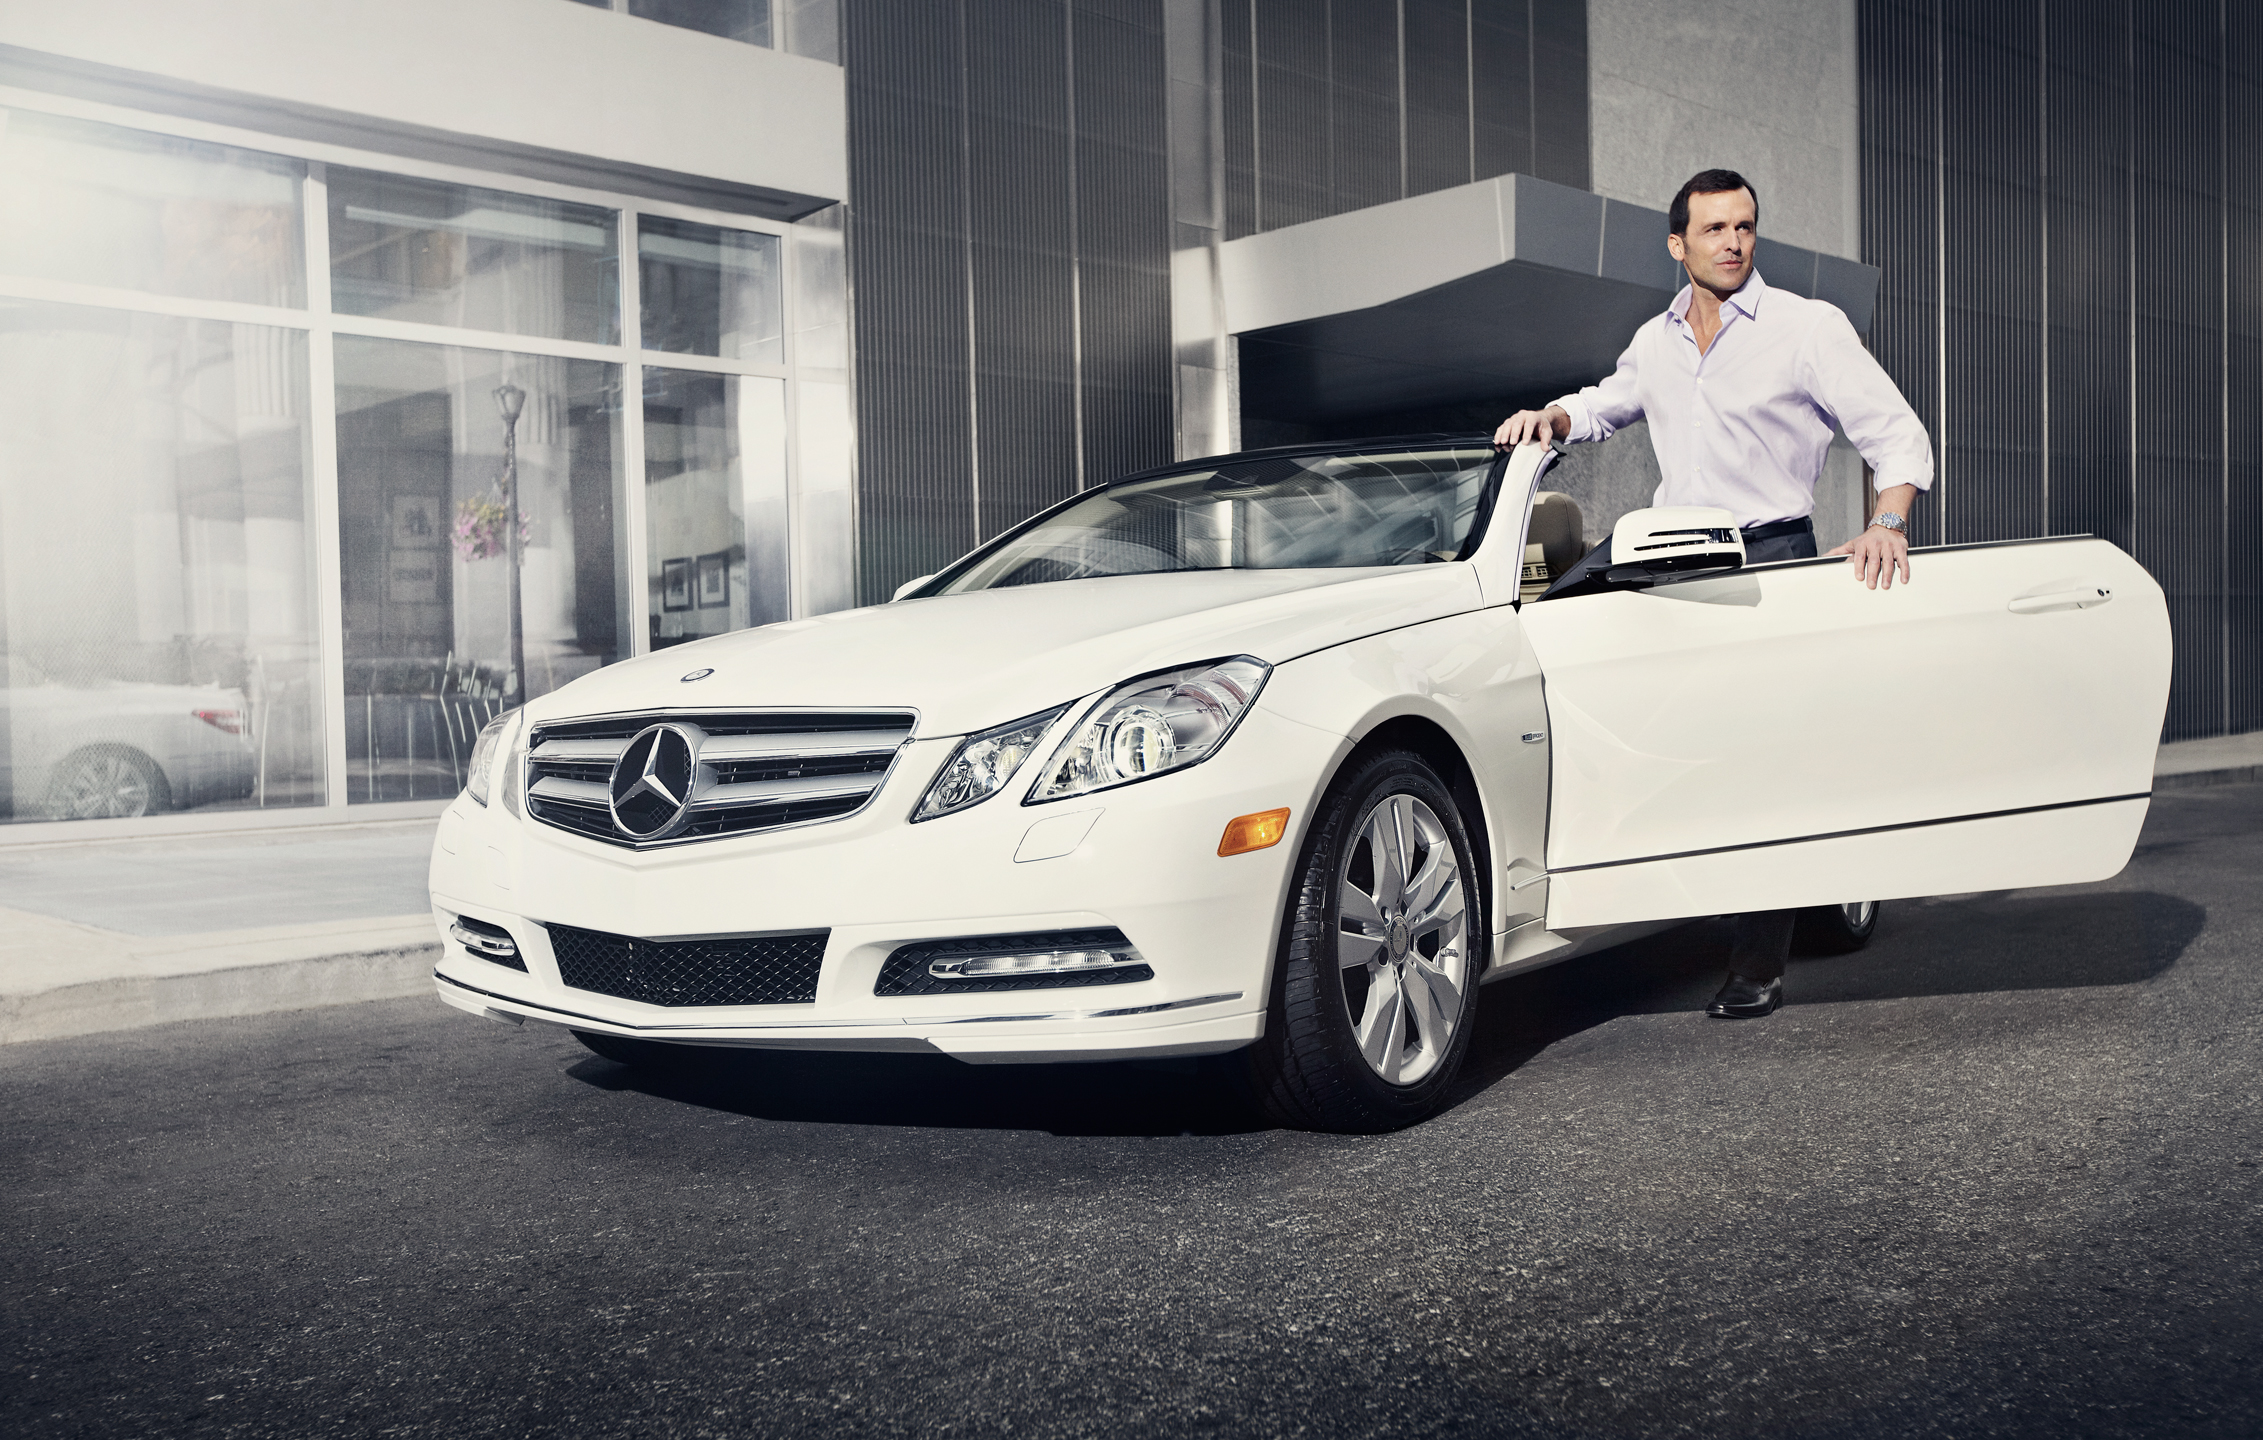 brian cummings lifestyle shoot for mercedes benz usa